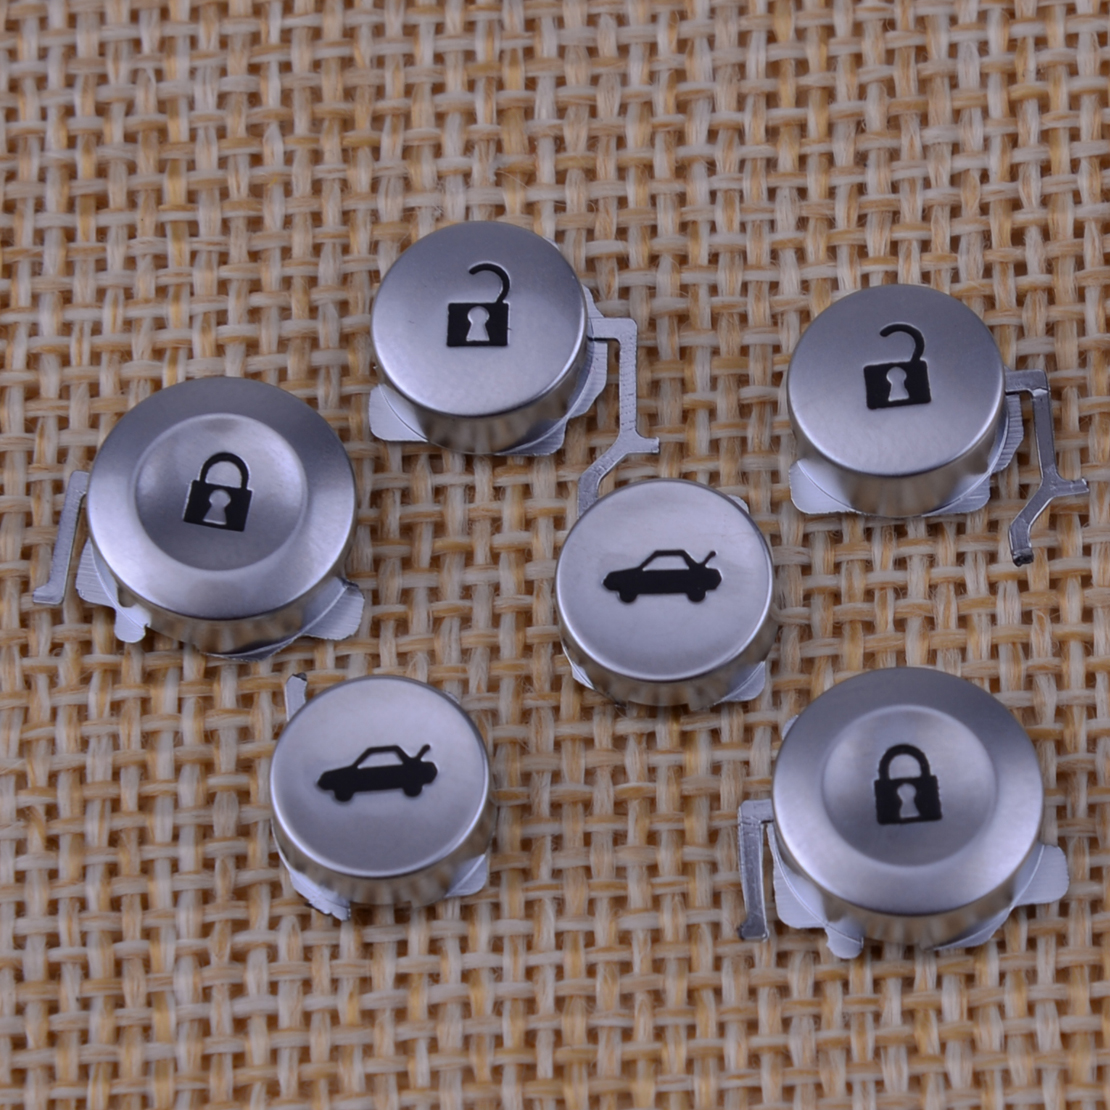 CITALL New 2 Pairs 3 Buttons Car <font><b>Remote</b></font> <font><b>Key</b></font> Pad FOB Kit Replacement Accessories Fit for <font><b>Honda</b></font> Civic Accord <font><b>Jazz</b></font> CRV HRV image